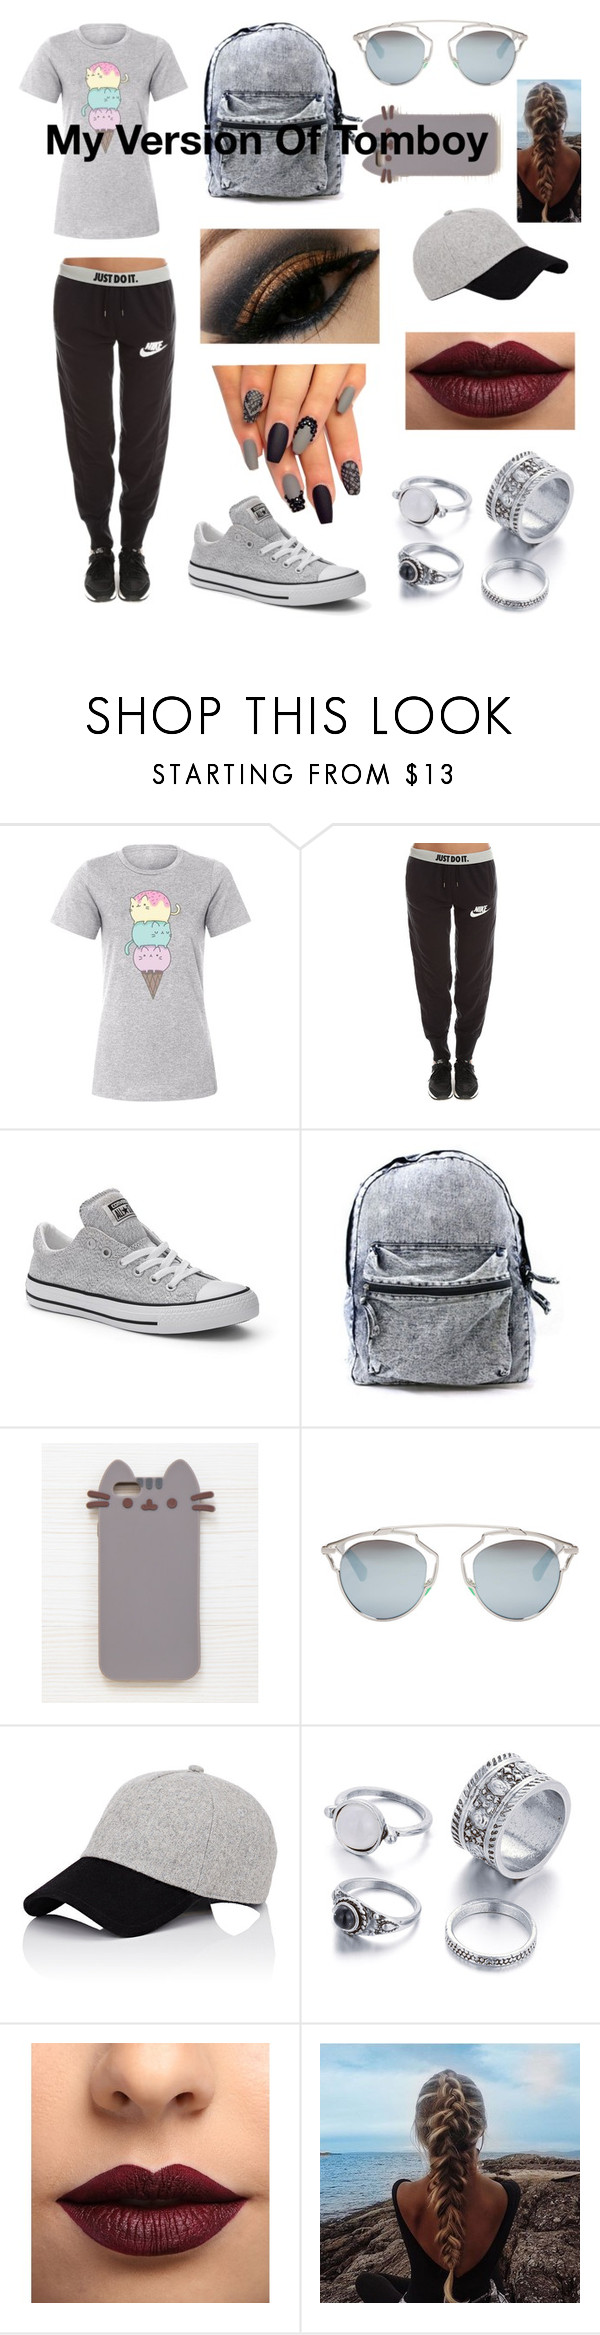 """My Version Of Tomboy"" by sodenoshirayuki-kuran ❤ liked on Polyvore featuring Pusheen, NIKE, Converse, Christian Dior, rag & bone and LASplash"